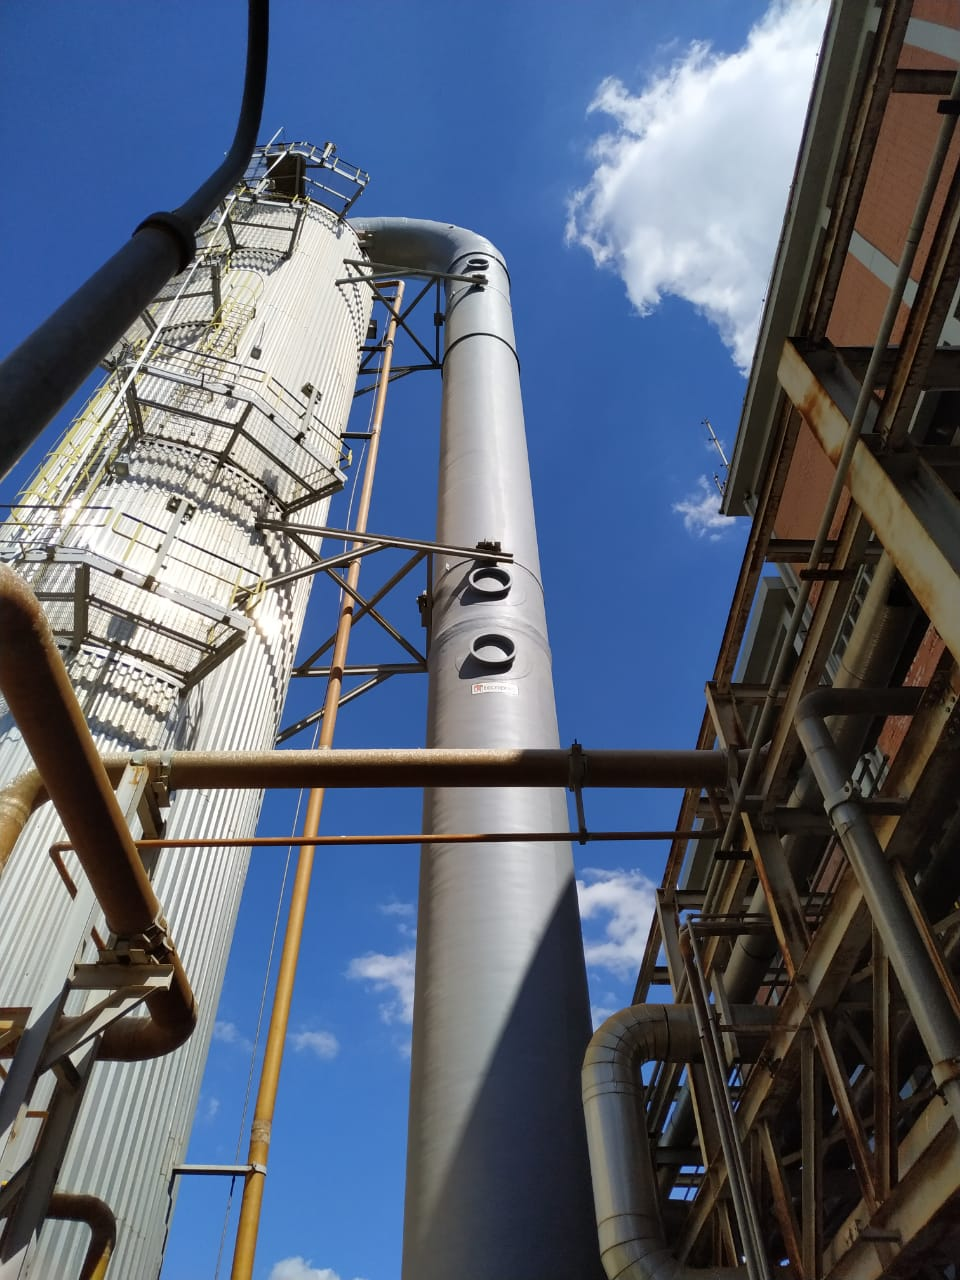 Tecniplas extends life of a composite equipment used in paper mill by 50% - Up flow tower: corrosive fluids and high process temperature